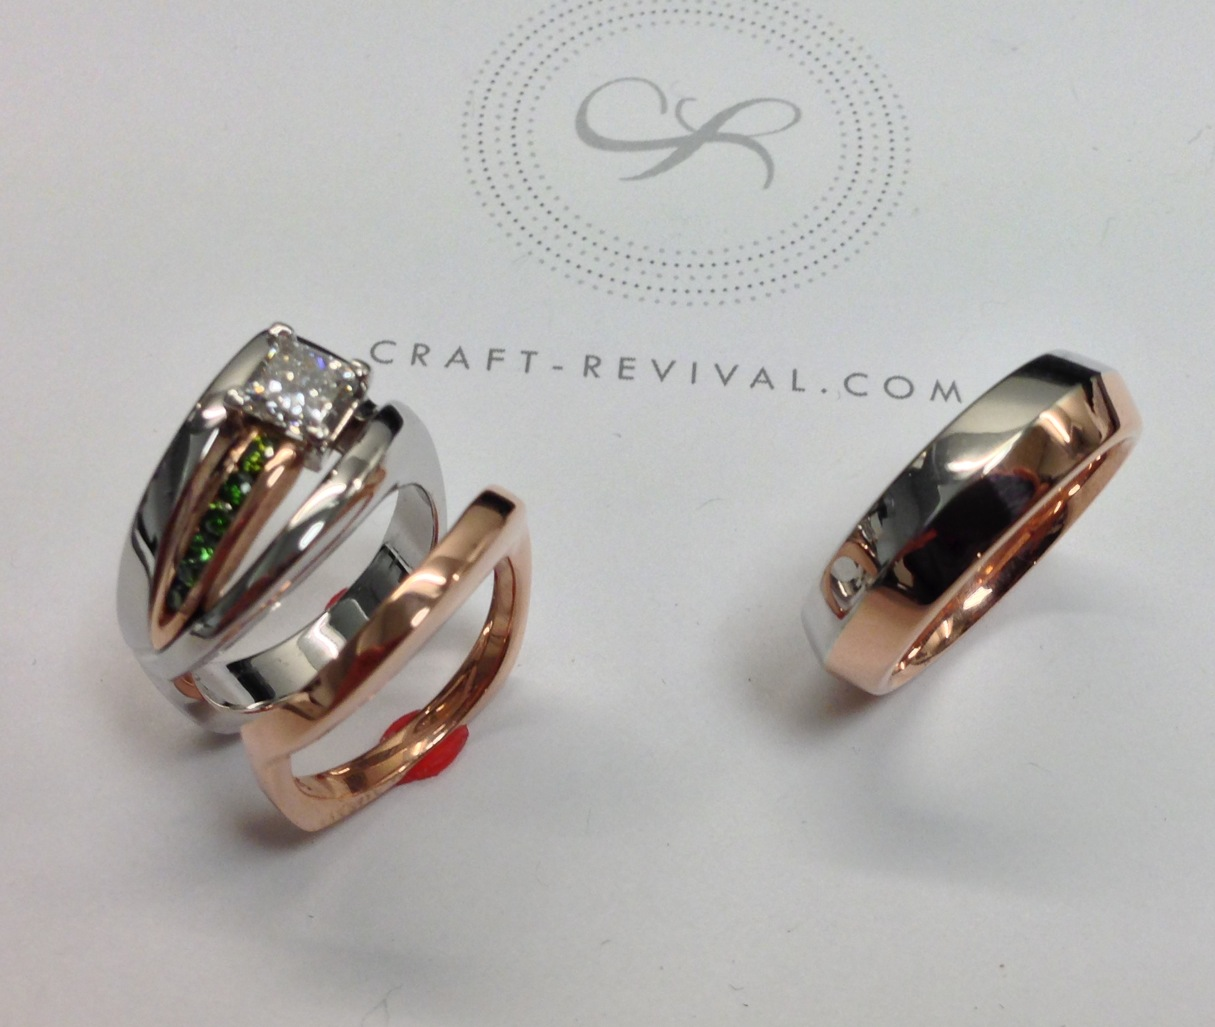 unique-rose-white-gold-custom-wedding-set-craft-revival-jewelers-store-grand-rapids